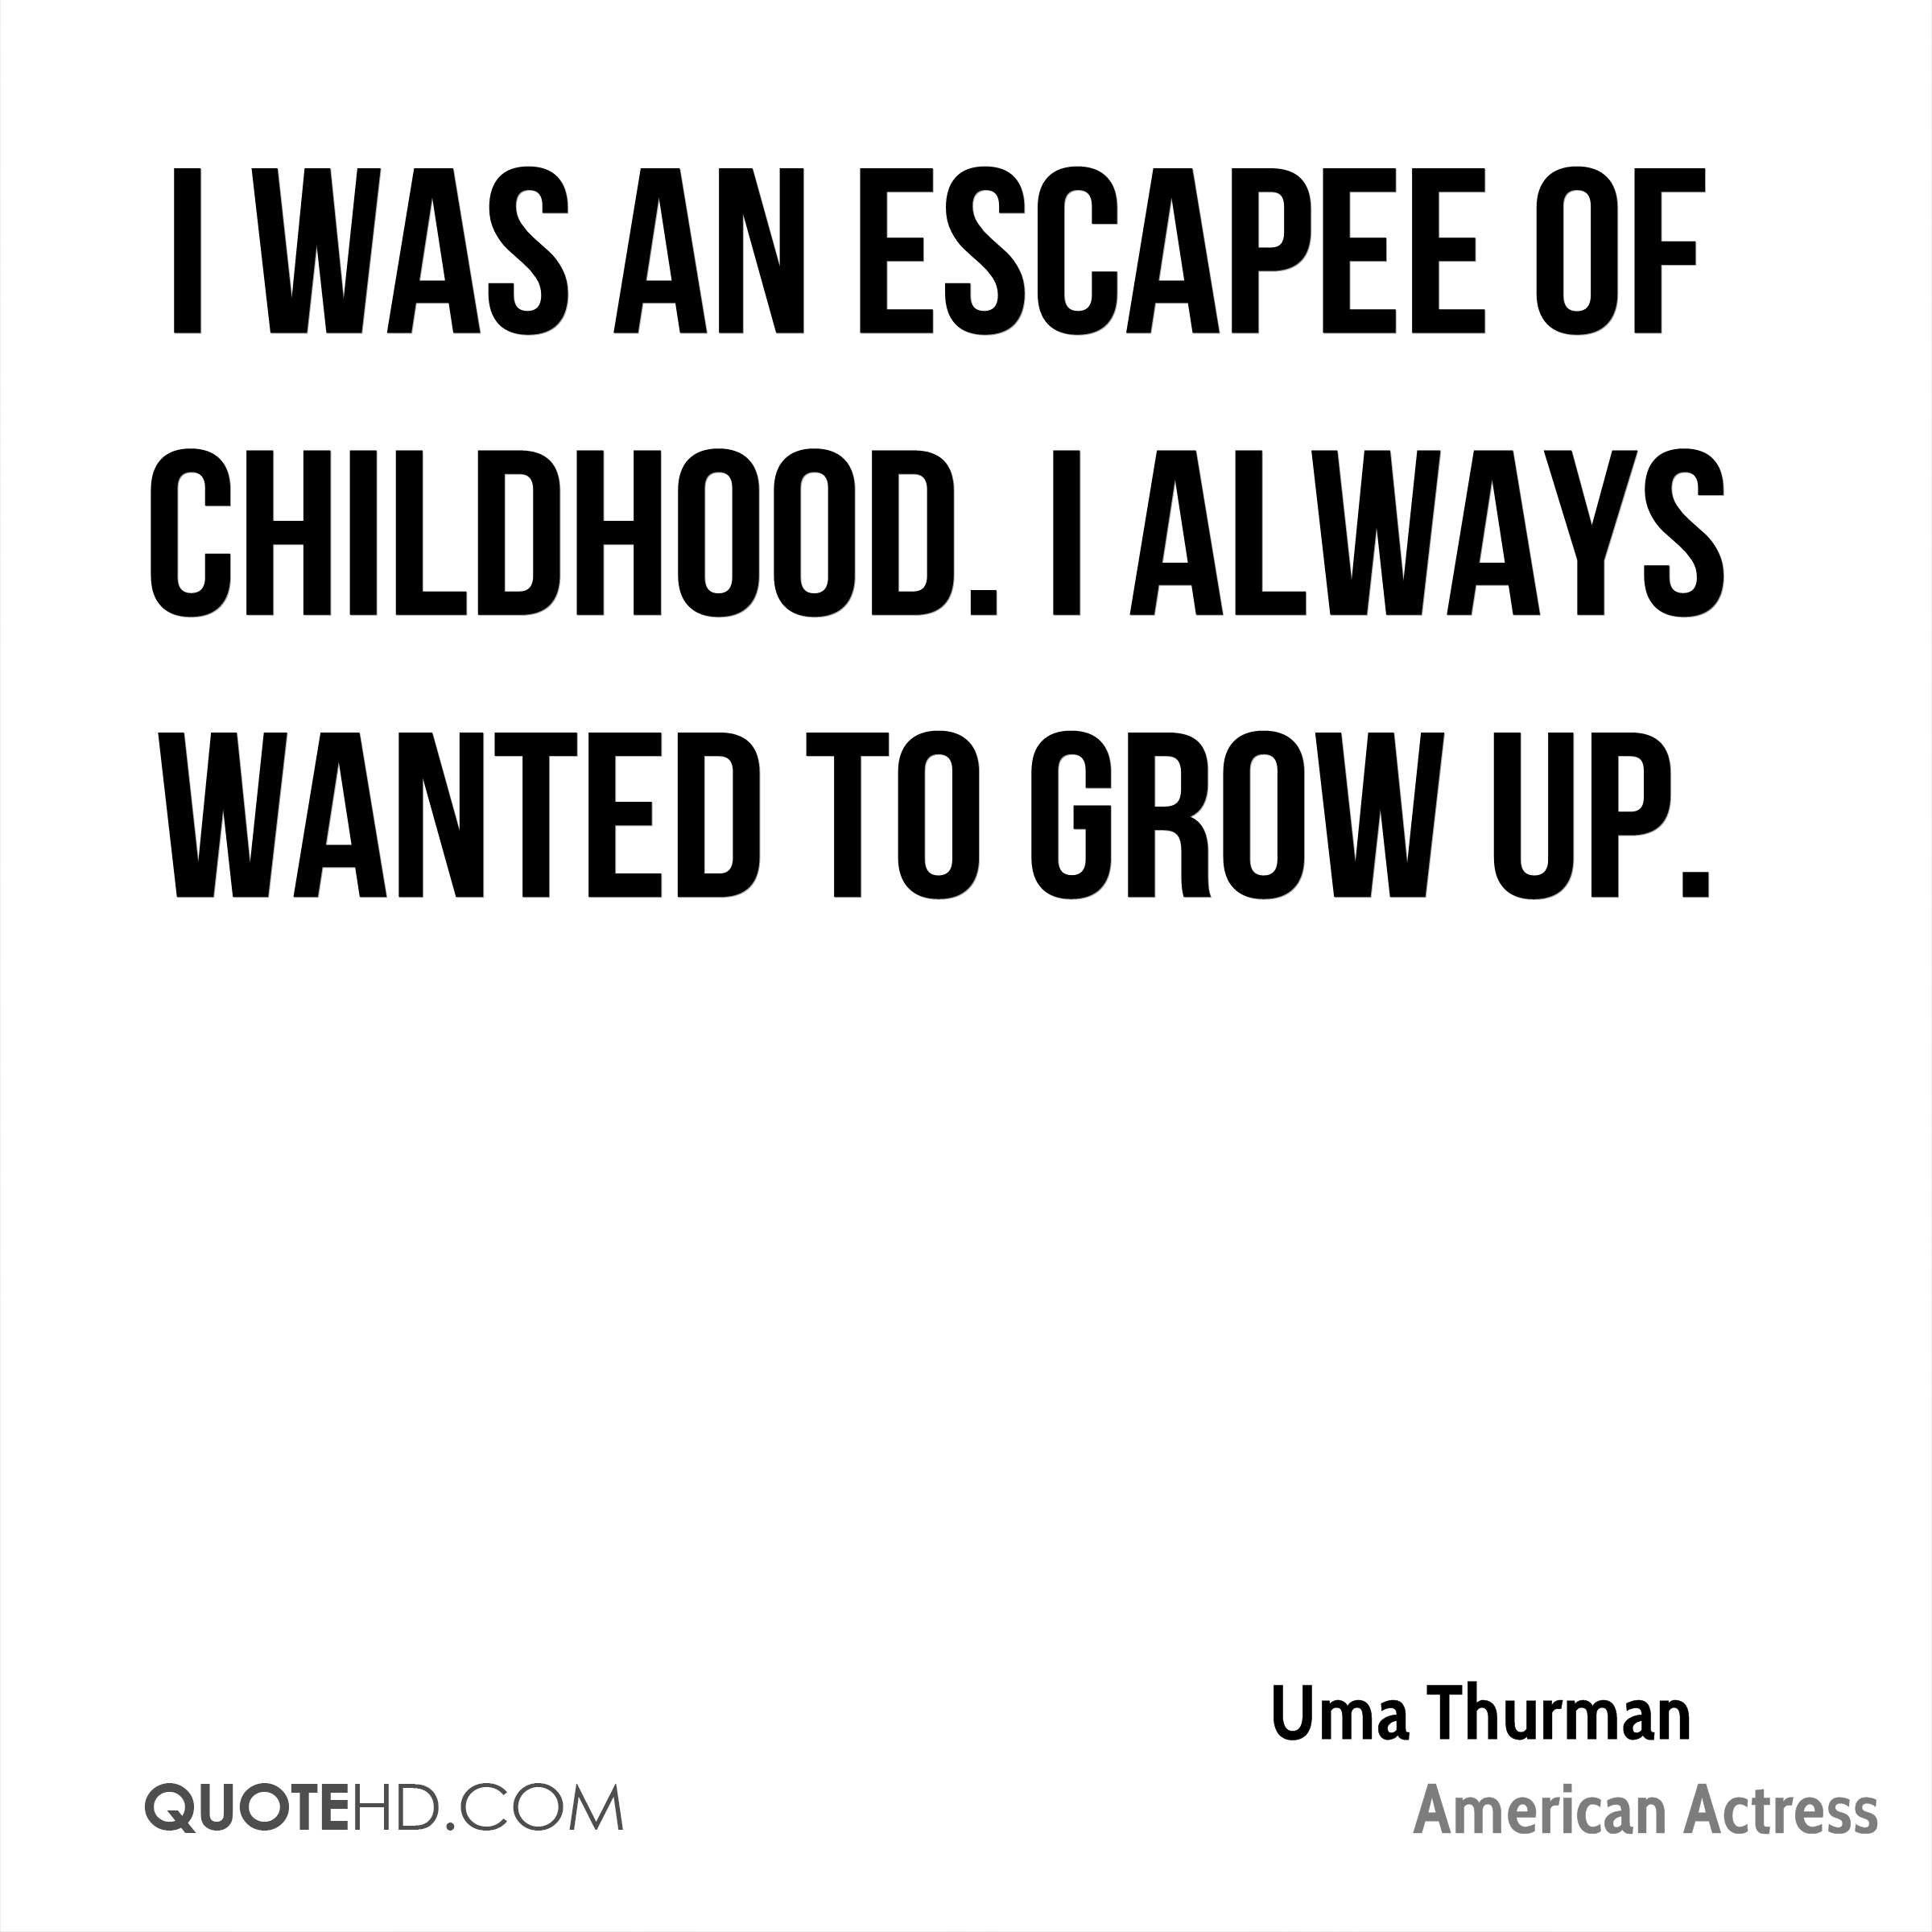 I was an escapee of childhood. I always wanted to grow up.